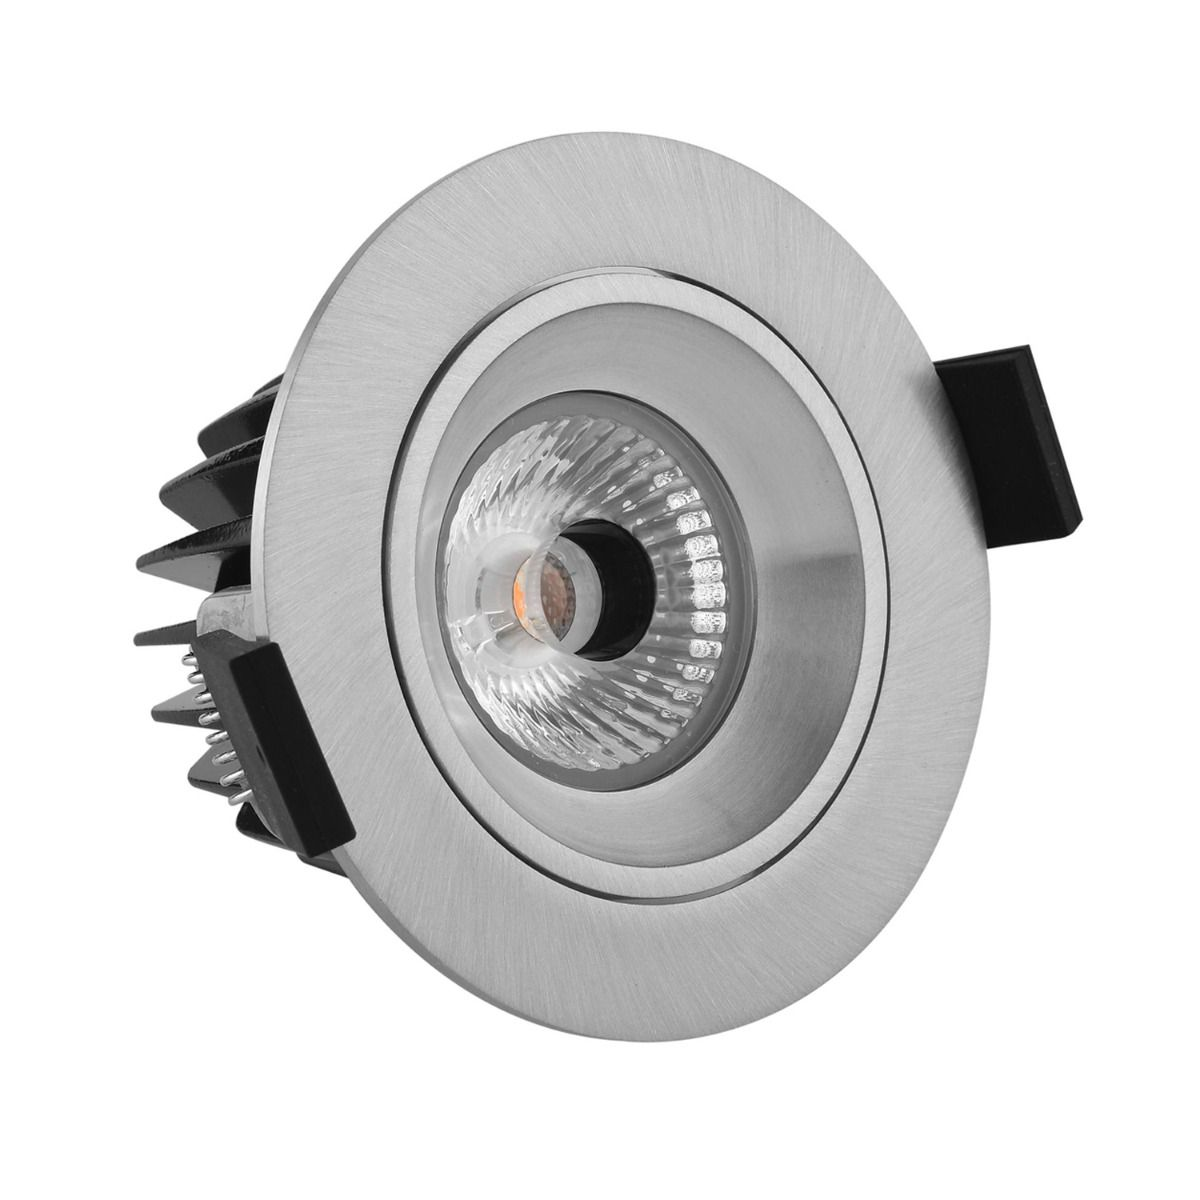 Noxion LED Spot Diamond IP44 2700K Aluminium | Best Colour Rendering - Dimmable